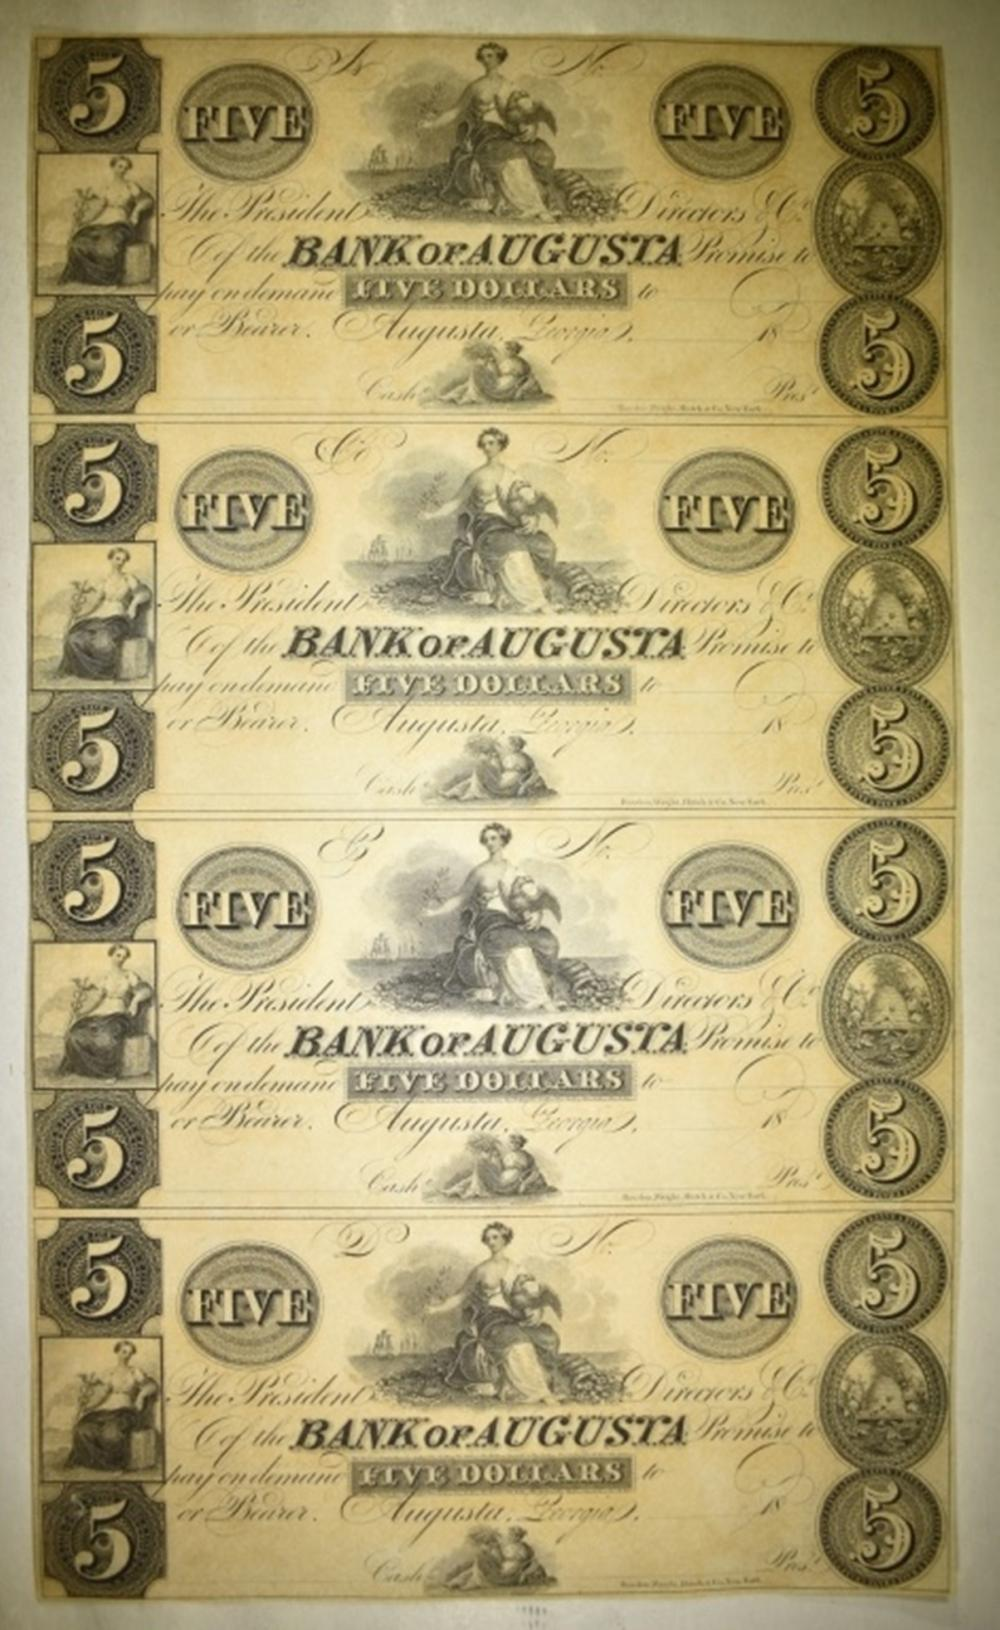 Lot 83: UNCUT SHEET OF 4-BANK OF AUGUSTA $5.00 NOTES